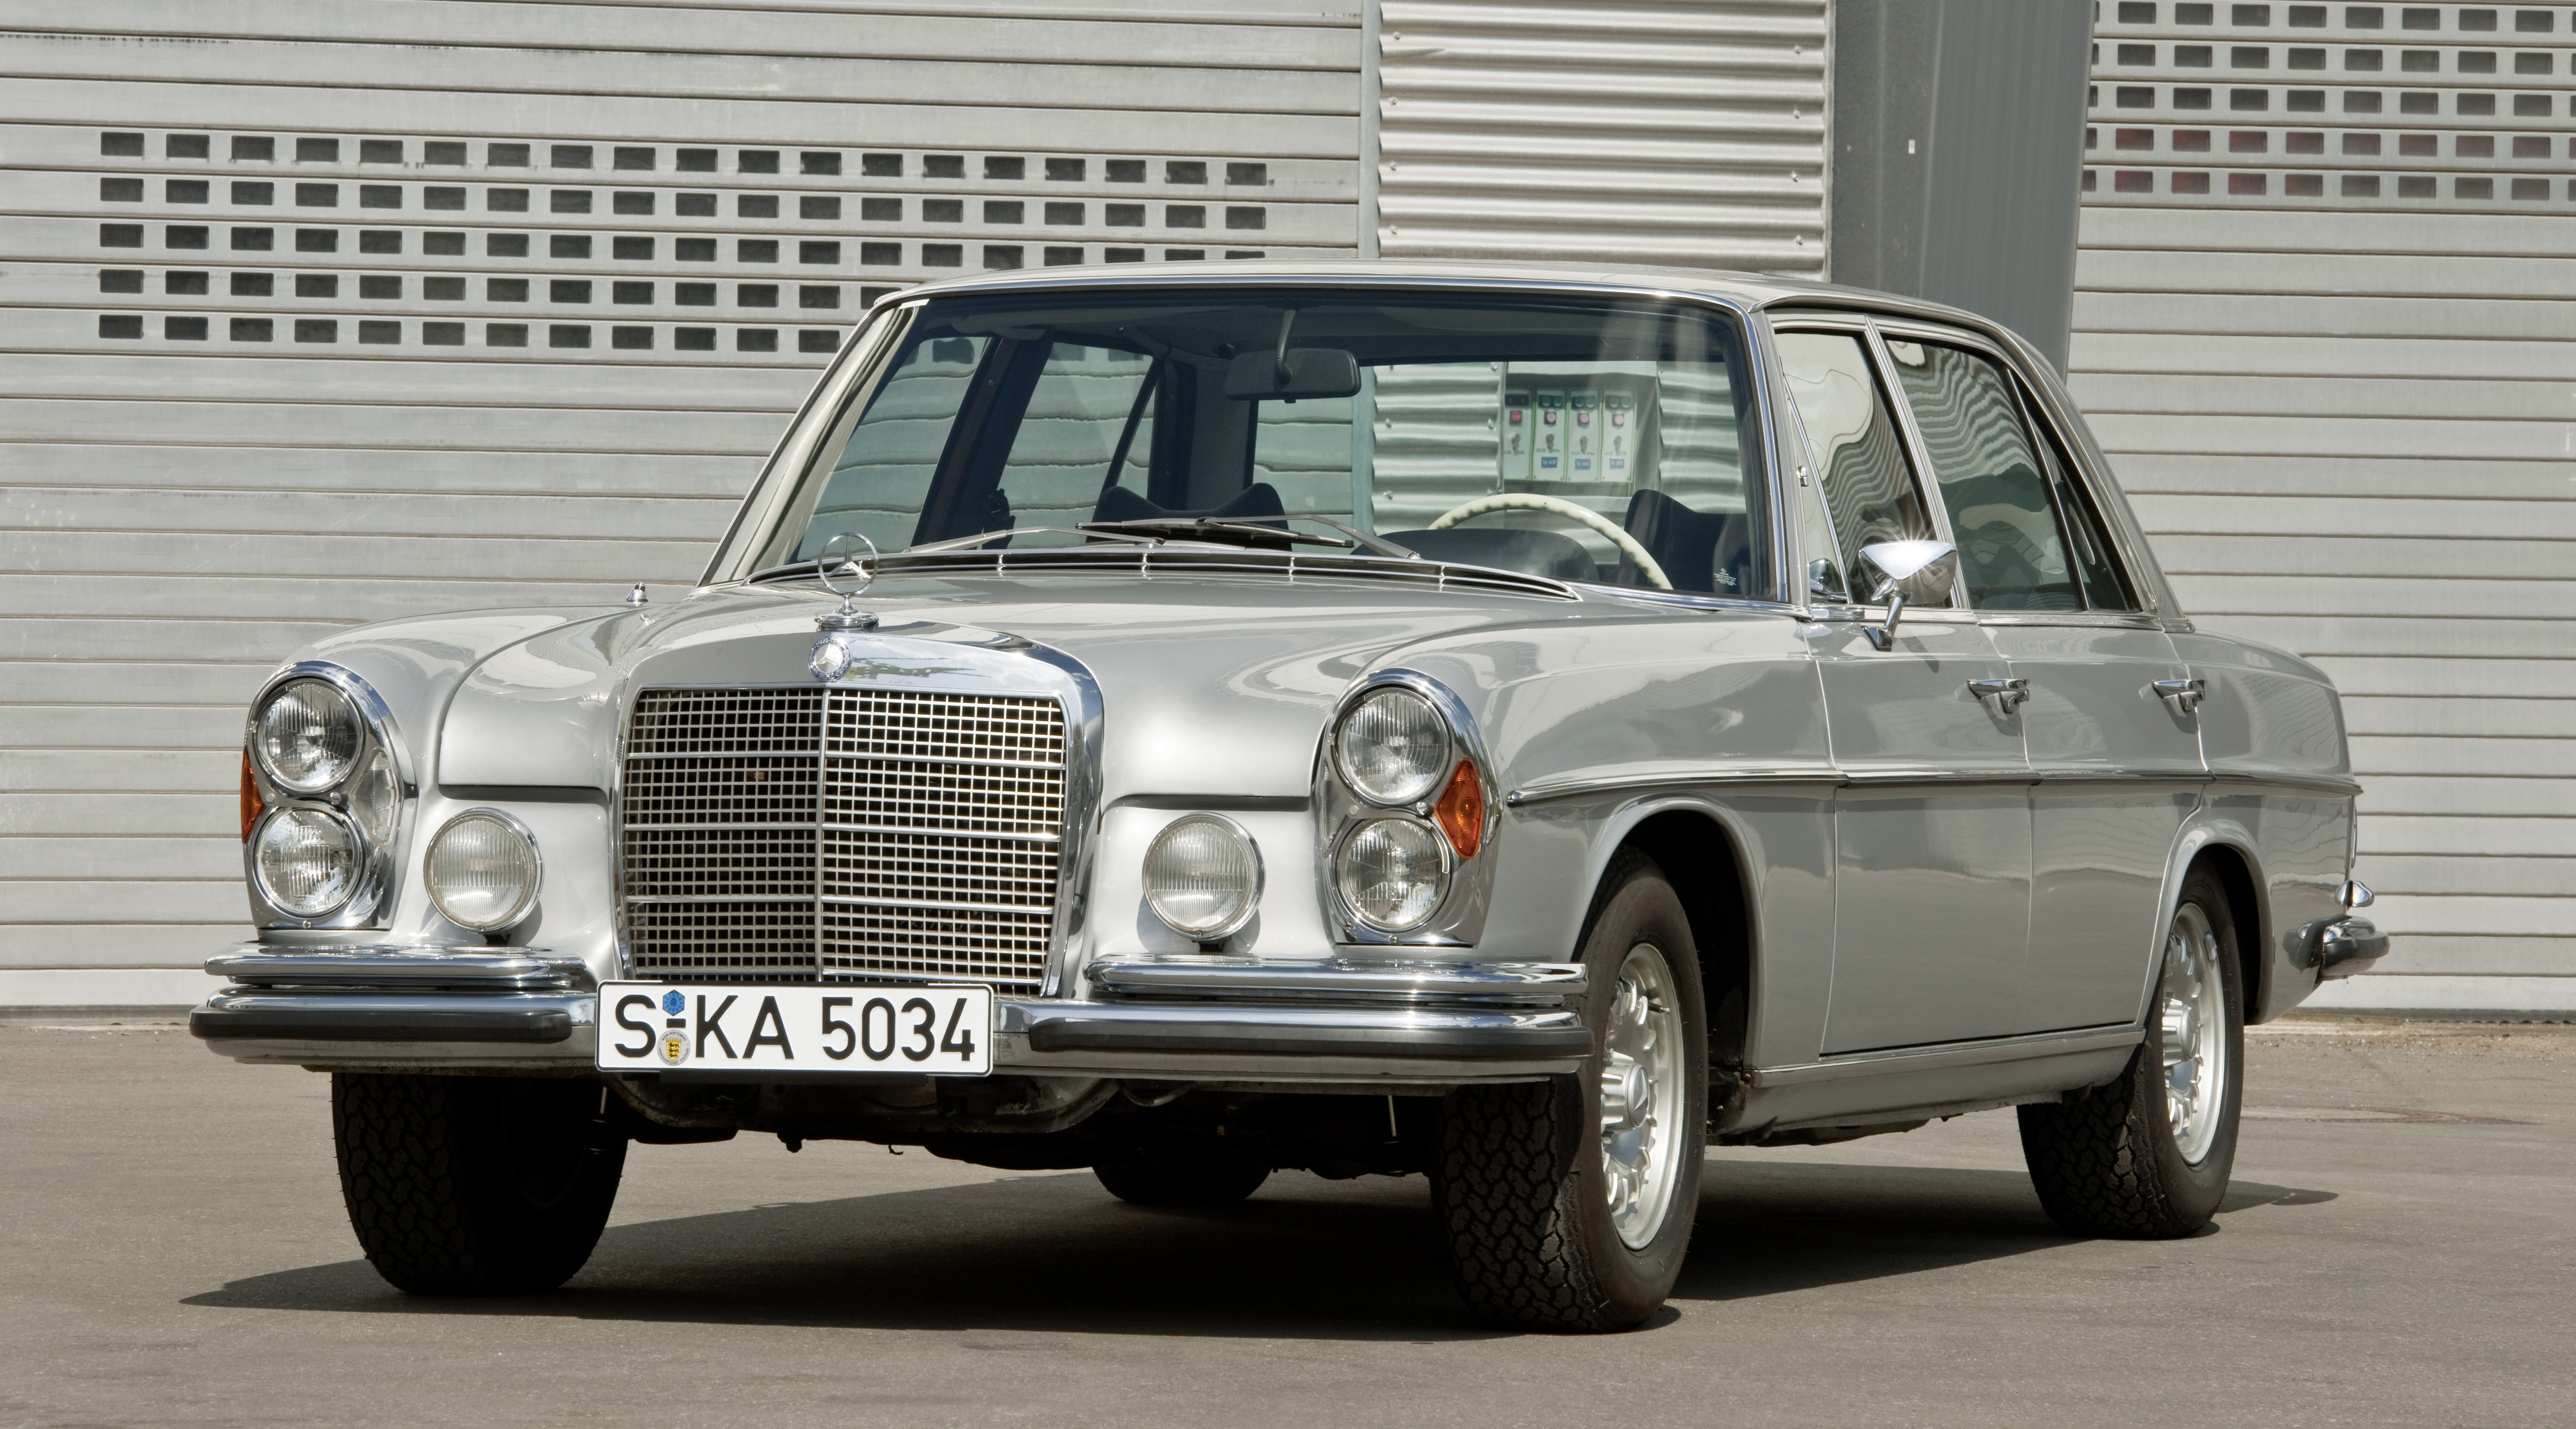 Mercedes-Benz 300 SEL 6 3 in 1968 | Torque